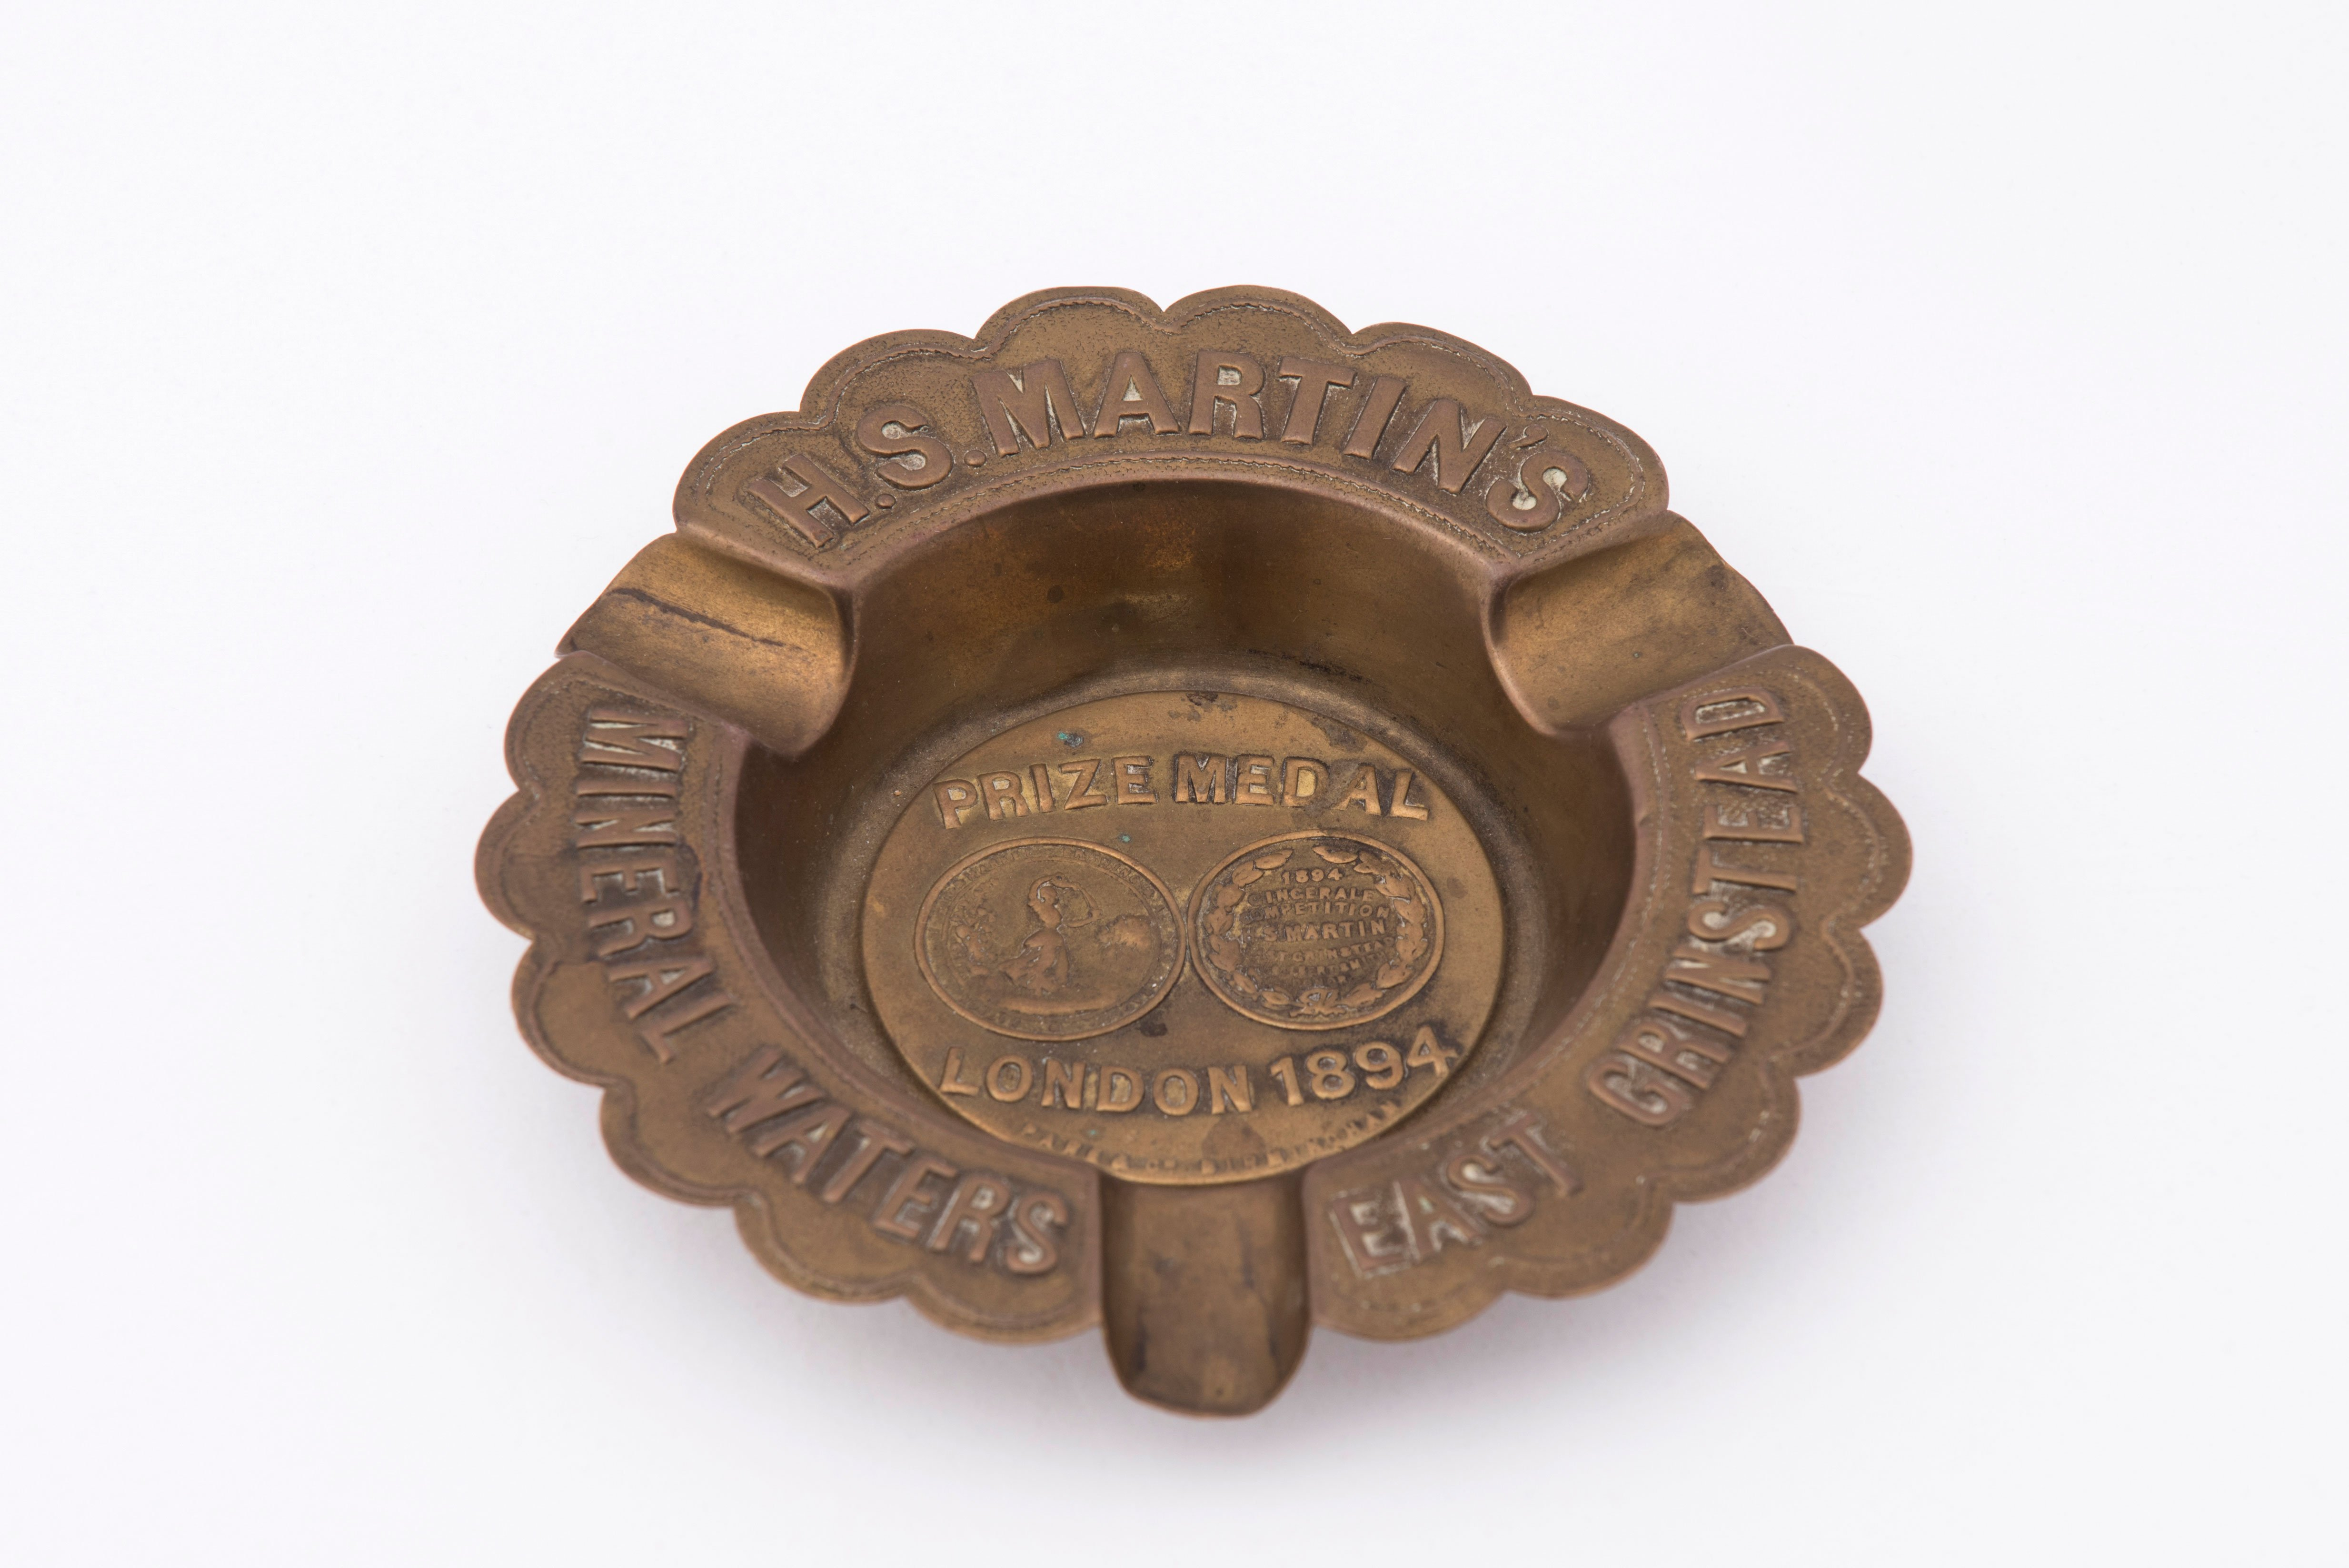 Ashtray – East Grinstead museum